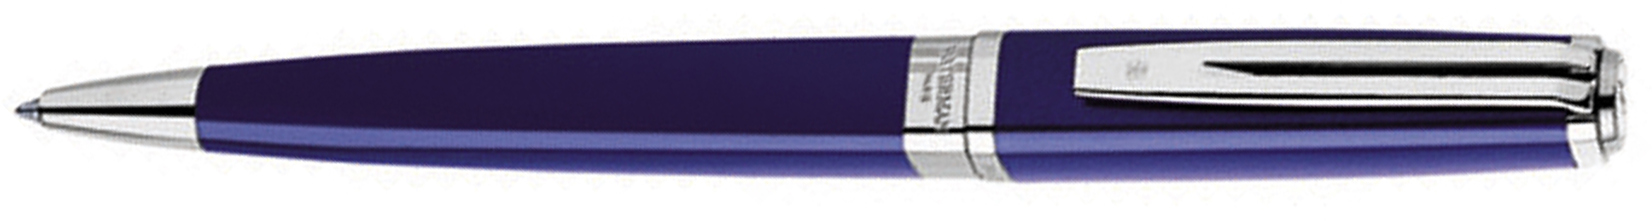 Ручка Exception Slim Blue ST WATERMAN Exception S0637120